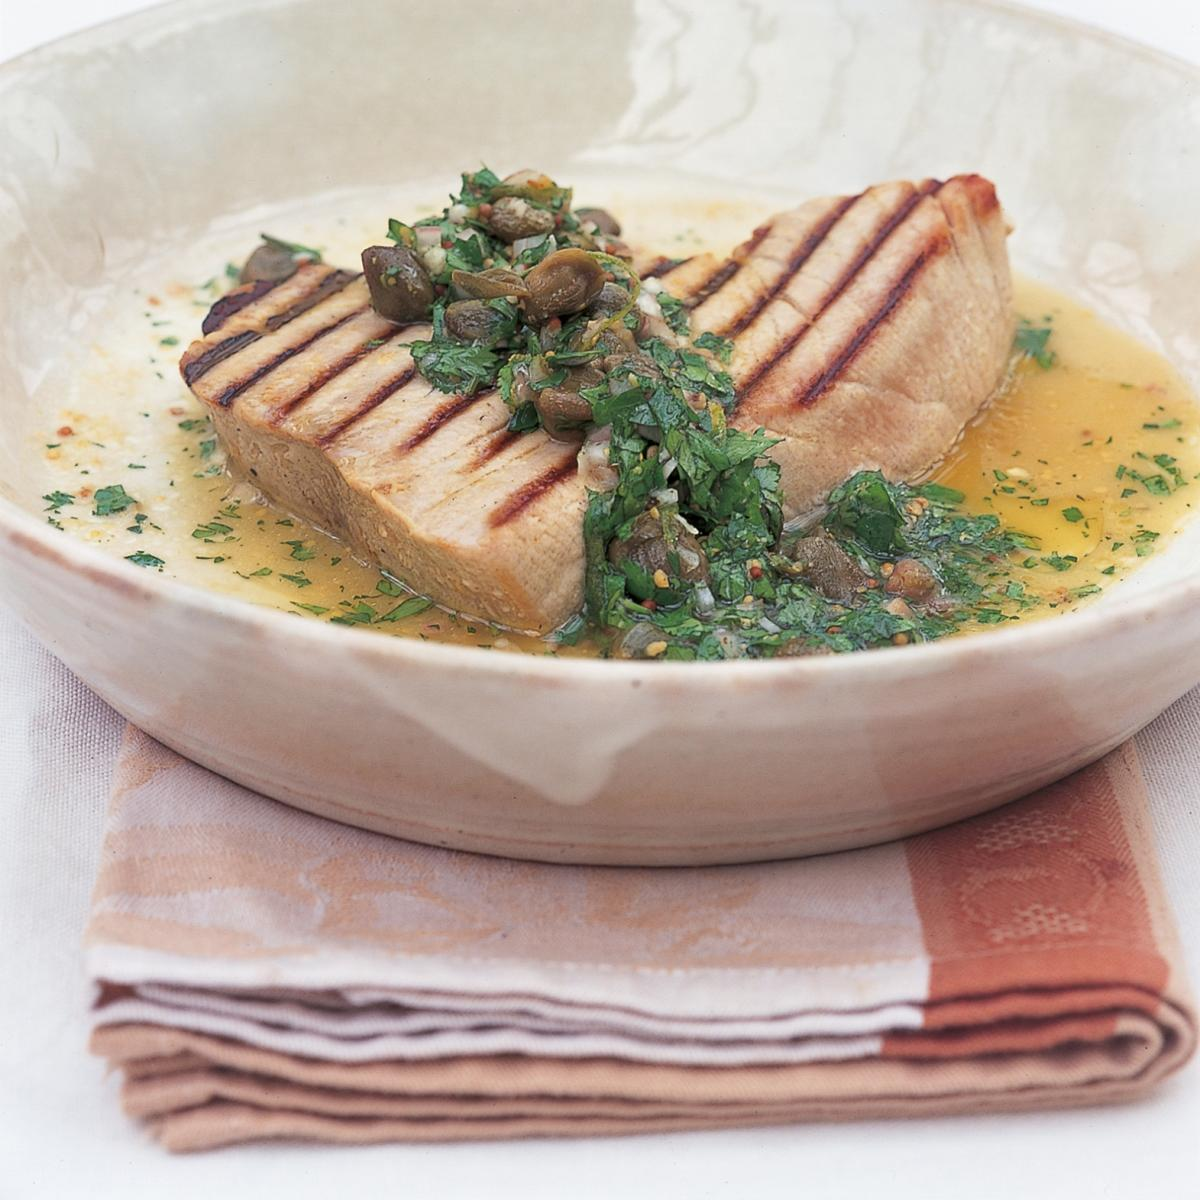 A picture of Delia's Char-grilled Tuna with Warm Coriander and Caper Vinaigrette recipe